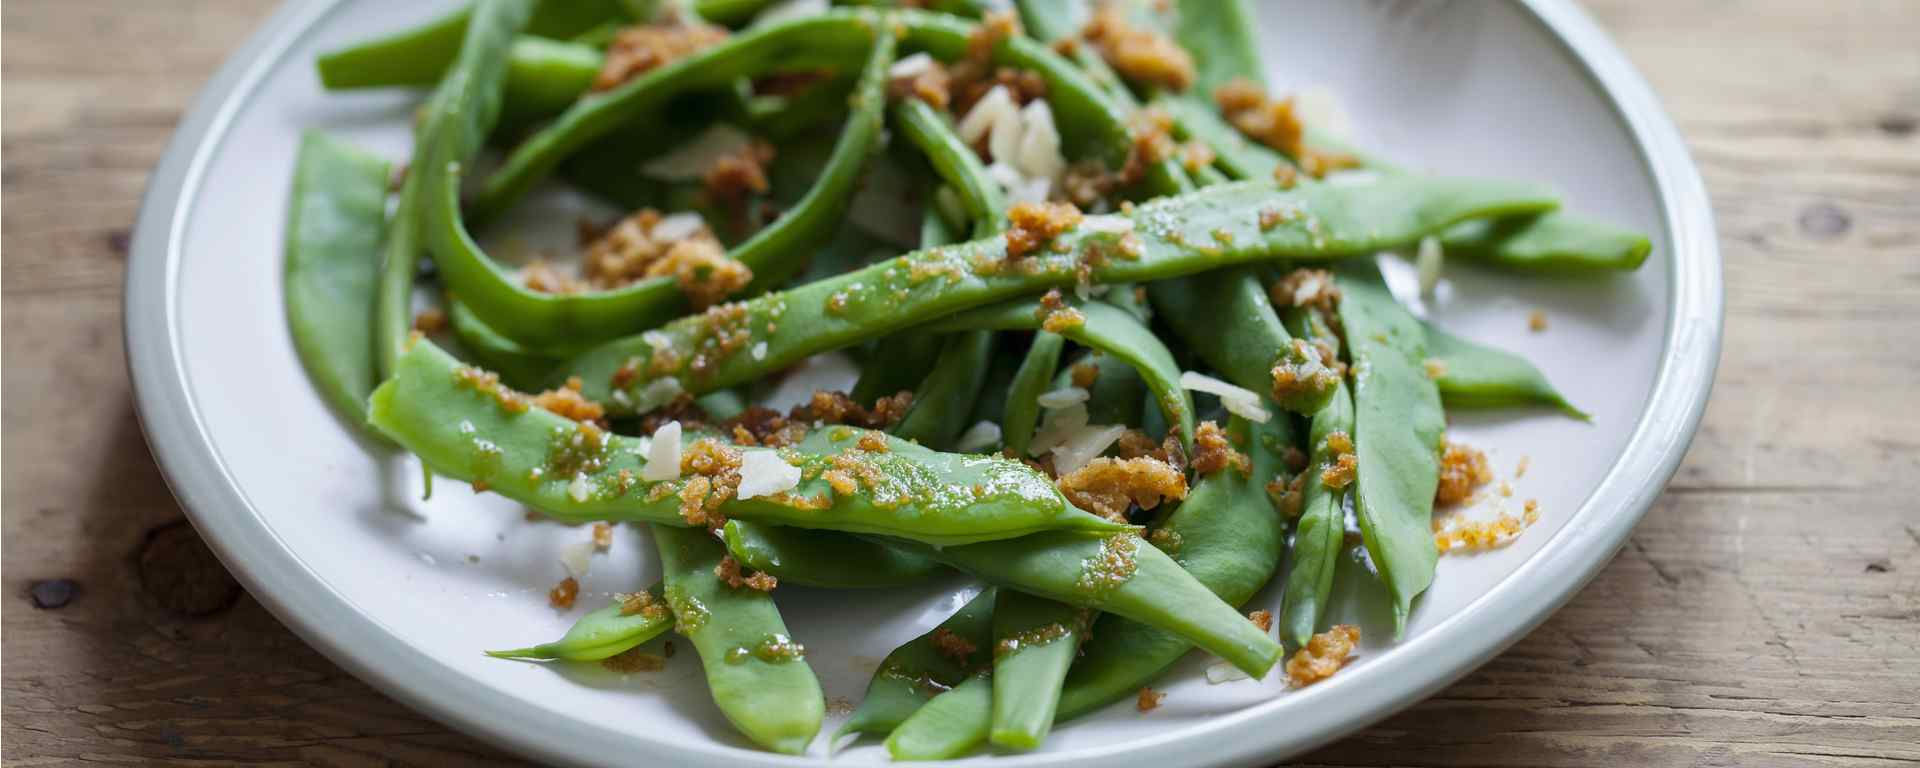 Photo for - Haricots verts sautés au beurre